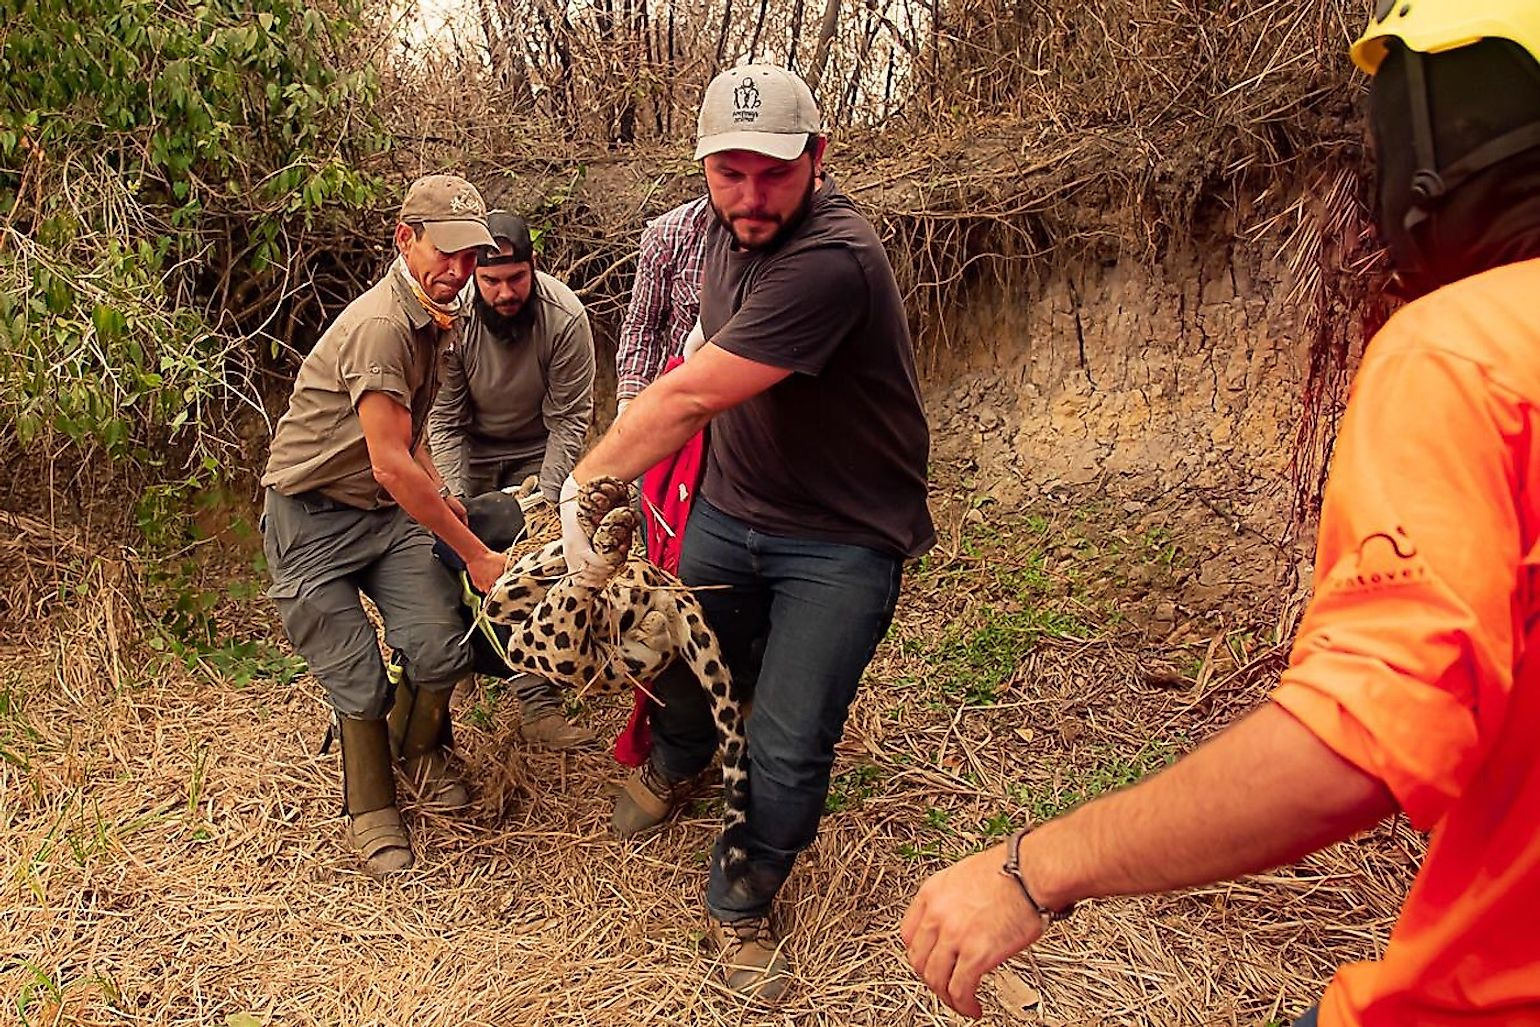 Panthera and volunteer veterinarians transport a young male anesthetized jaguar for treatment of its wounds. Image credit: Jose Medeiros